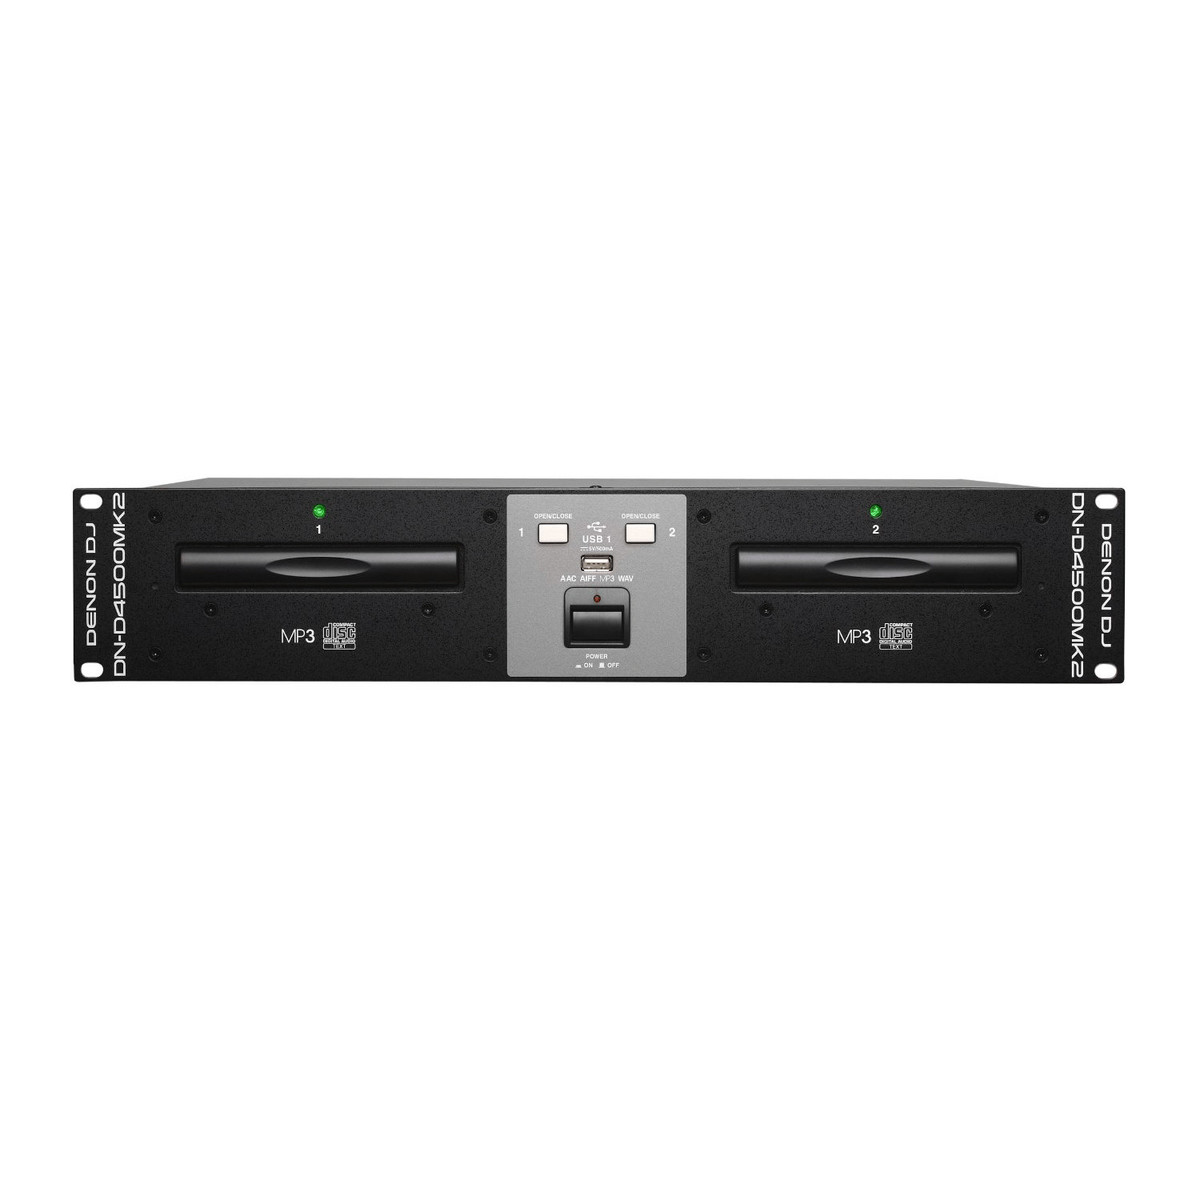 denon dj dnd4500mk2 rackmount twin cd player with usb playback at. Black Bedroom Furniture Sets. Home Design Ideas